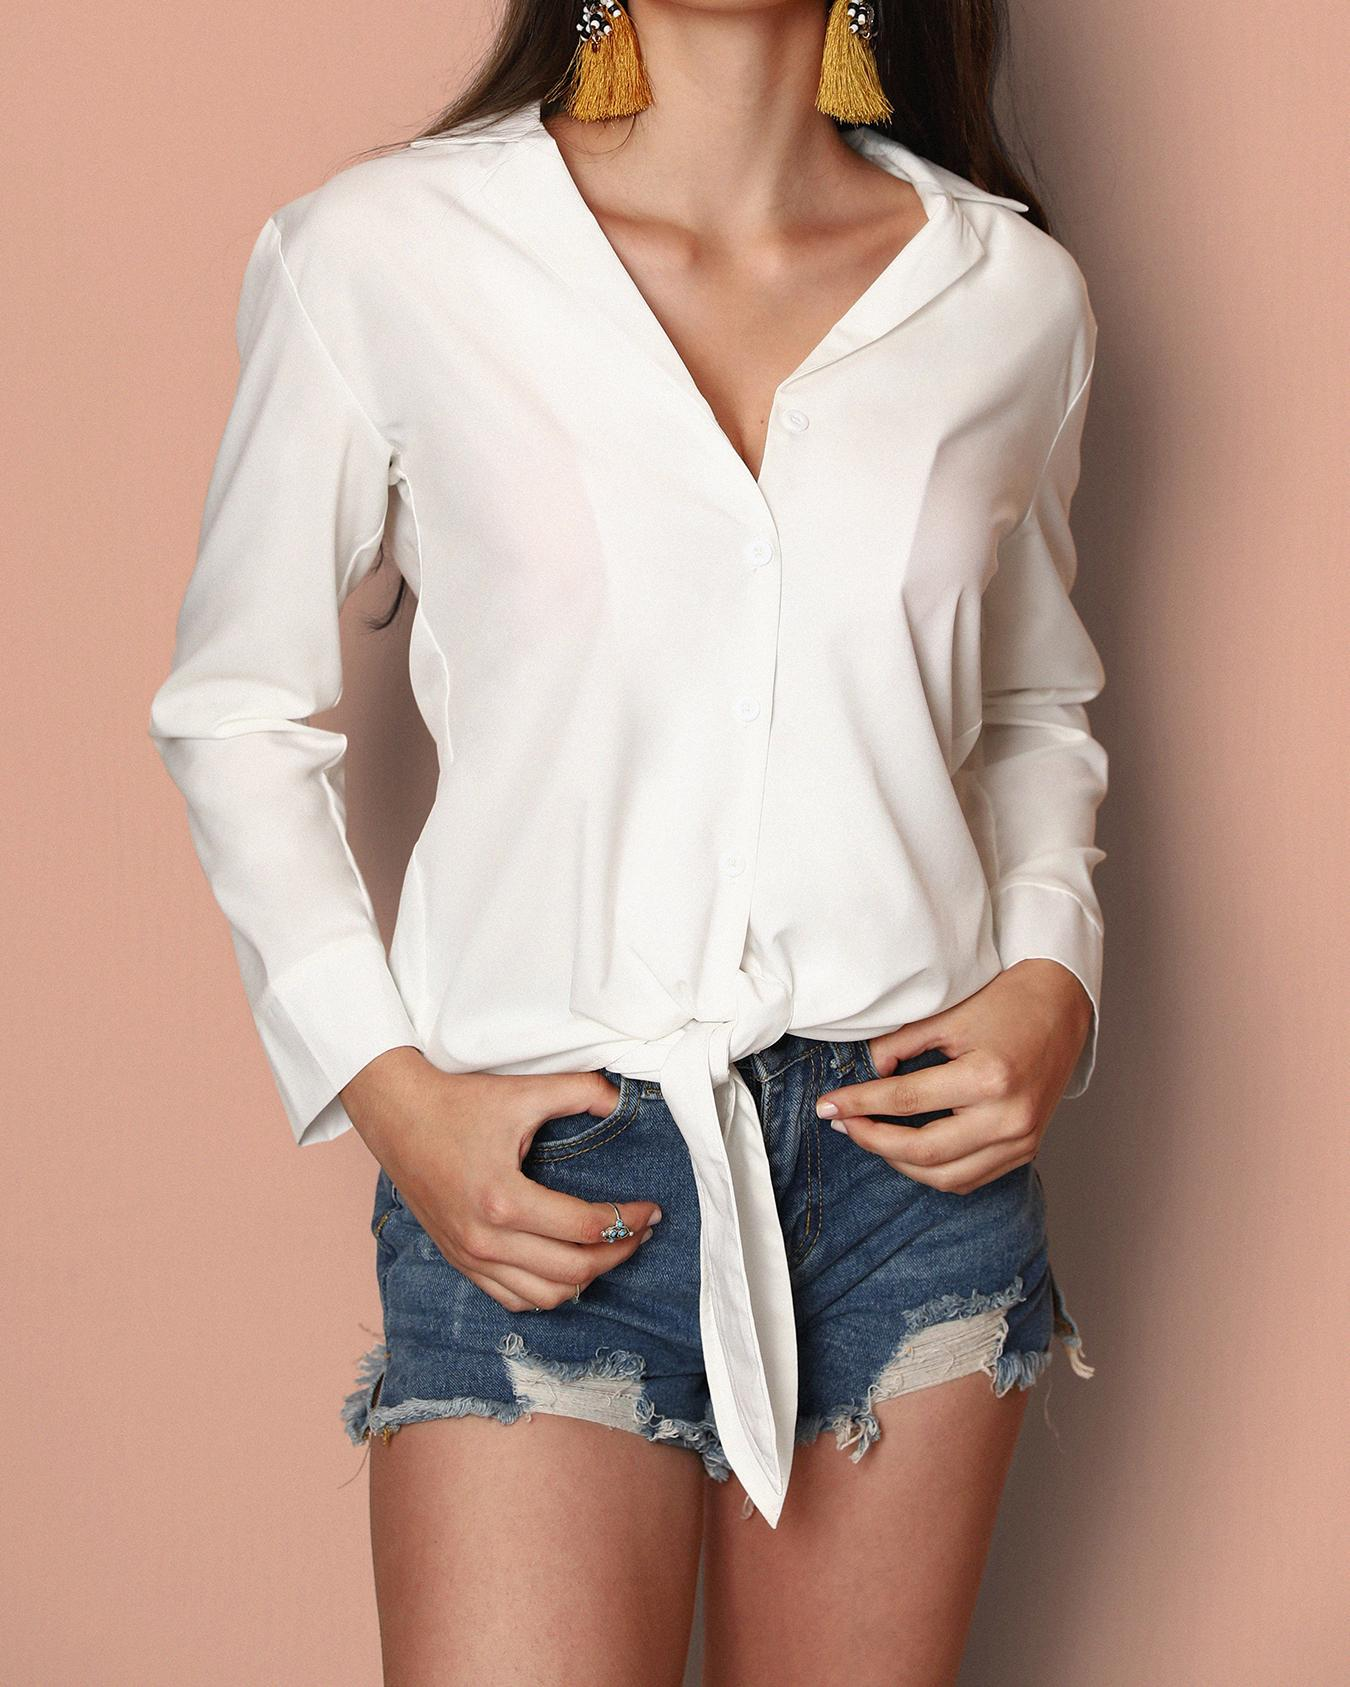 Stylish Bowtie Tied Solid Women's Blouse фото